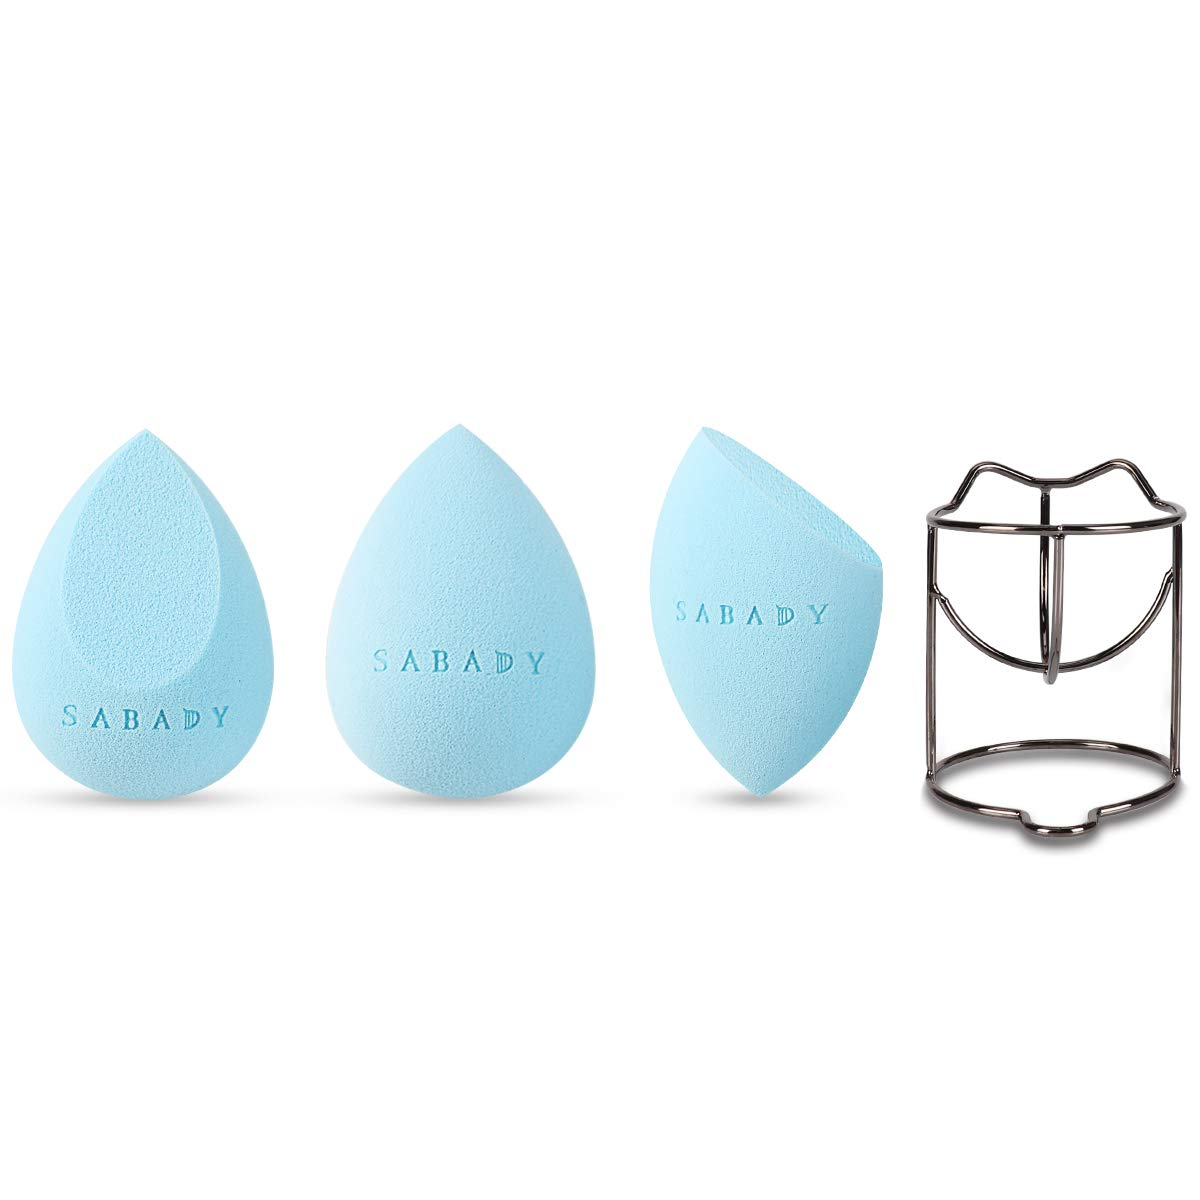 SABADY MAKEUP Beauty Sponge Blenders Set With Travel Cases,BlackGold Holder, Multi-shaped,Durable,Soft,Latex-free Blending Sponges Perfect for Foundation,Concealer,Cream,Sensitive and All Skin Types